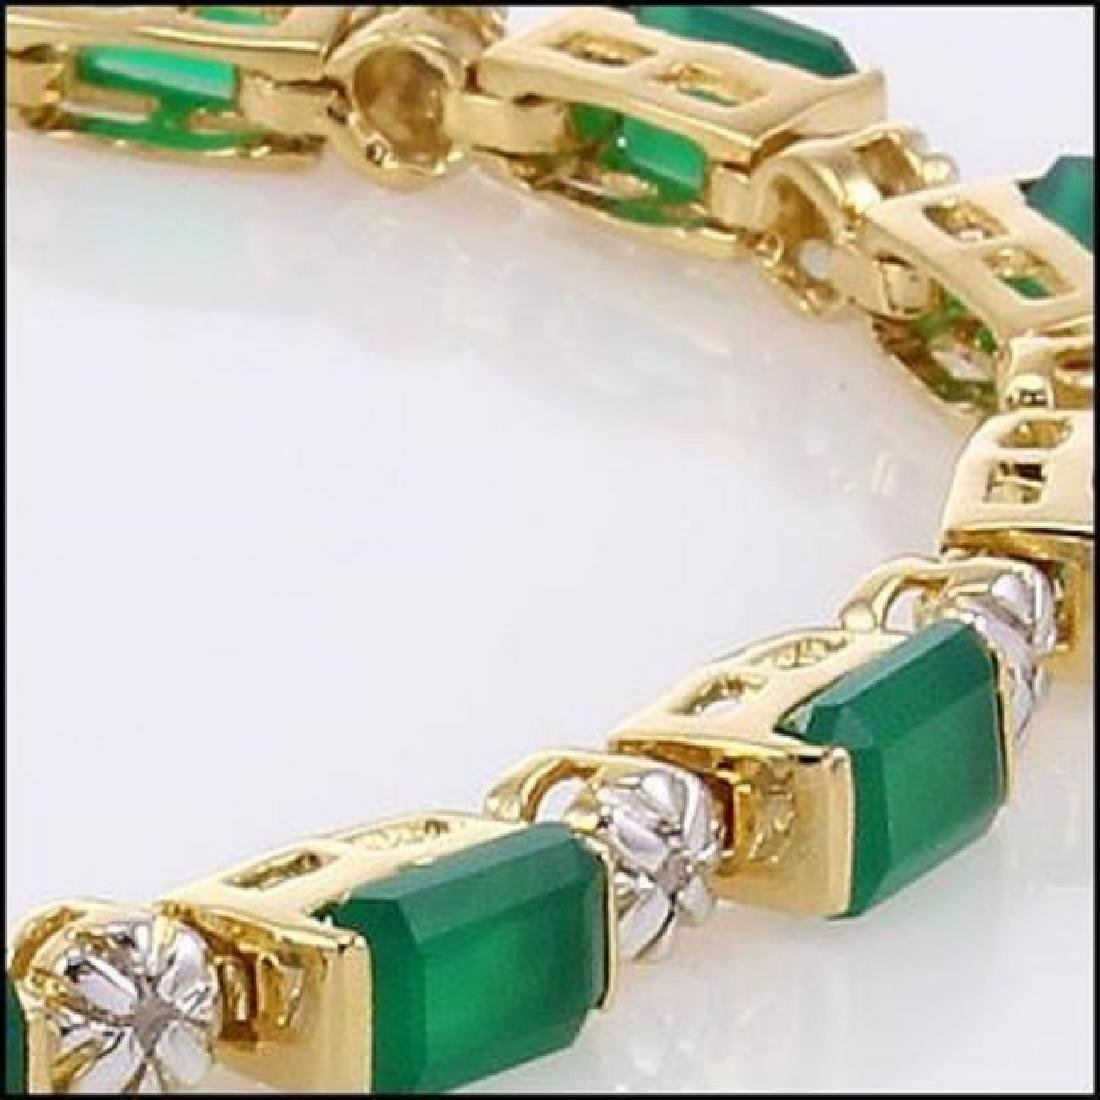 9.79 CT Green Agate & Diamond Designer Bracelet $1405 - 2